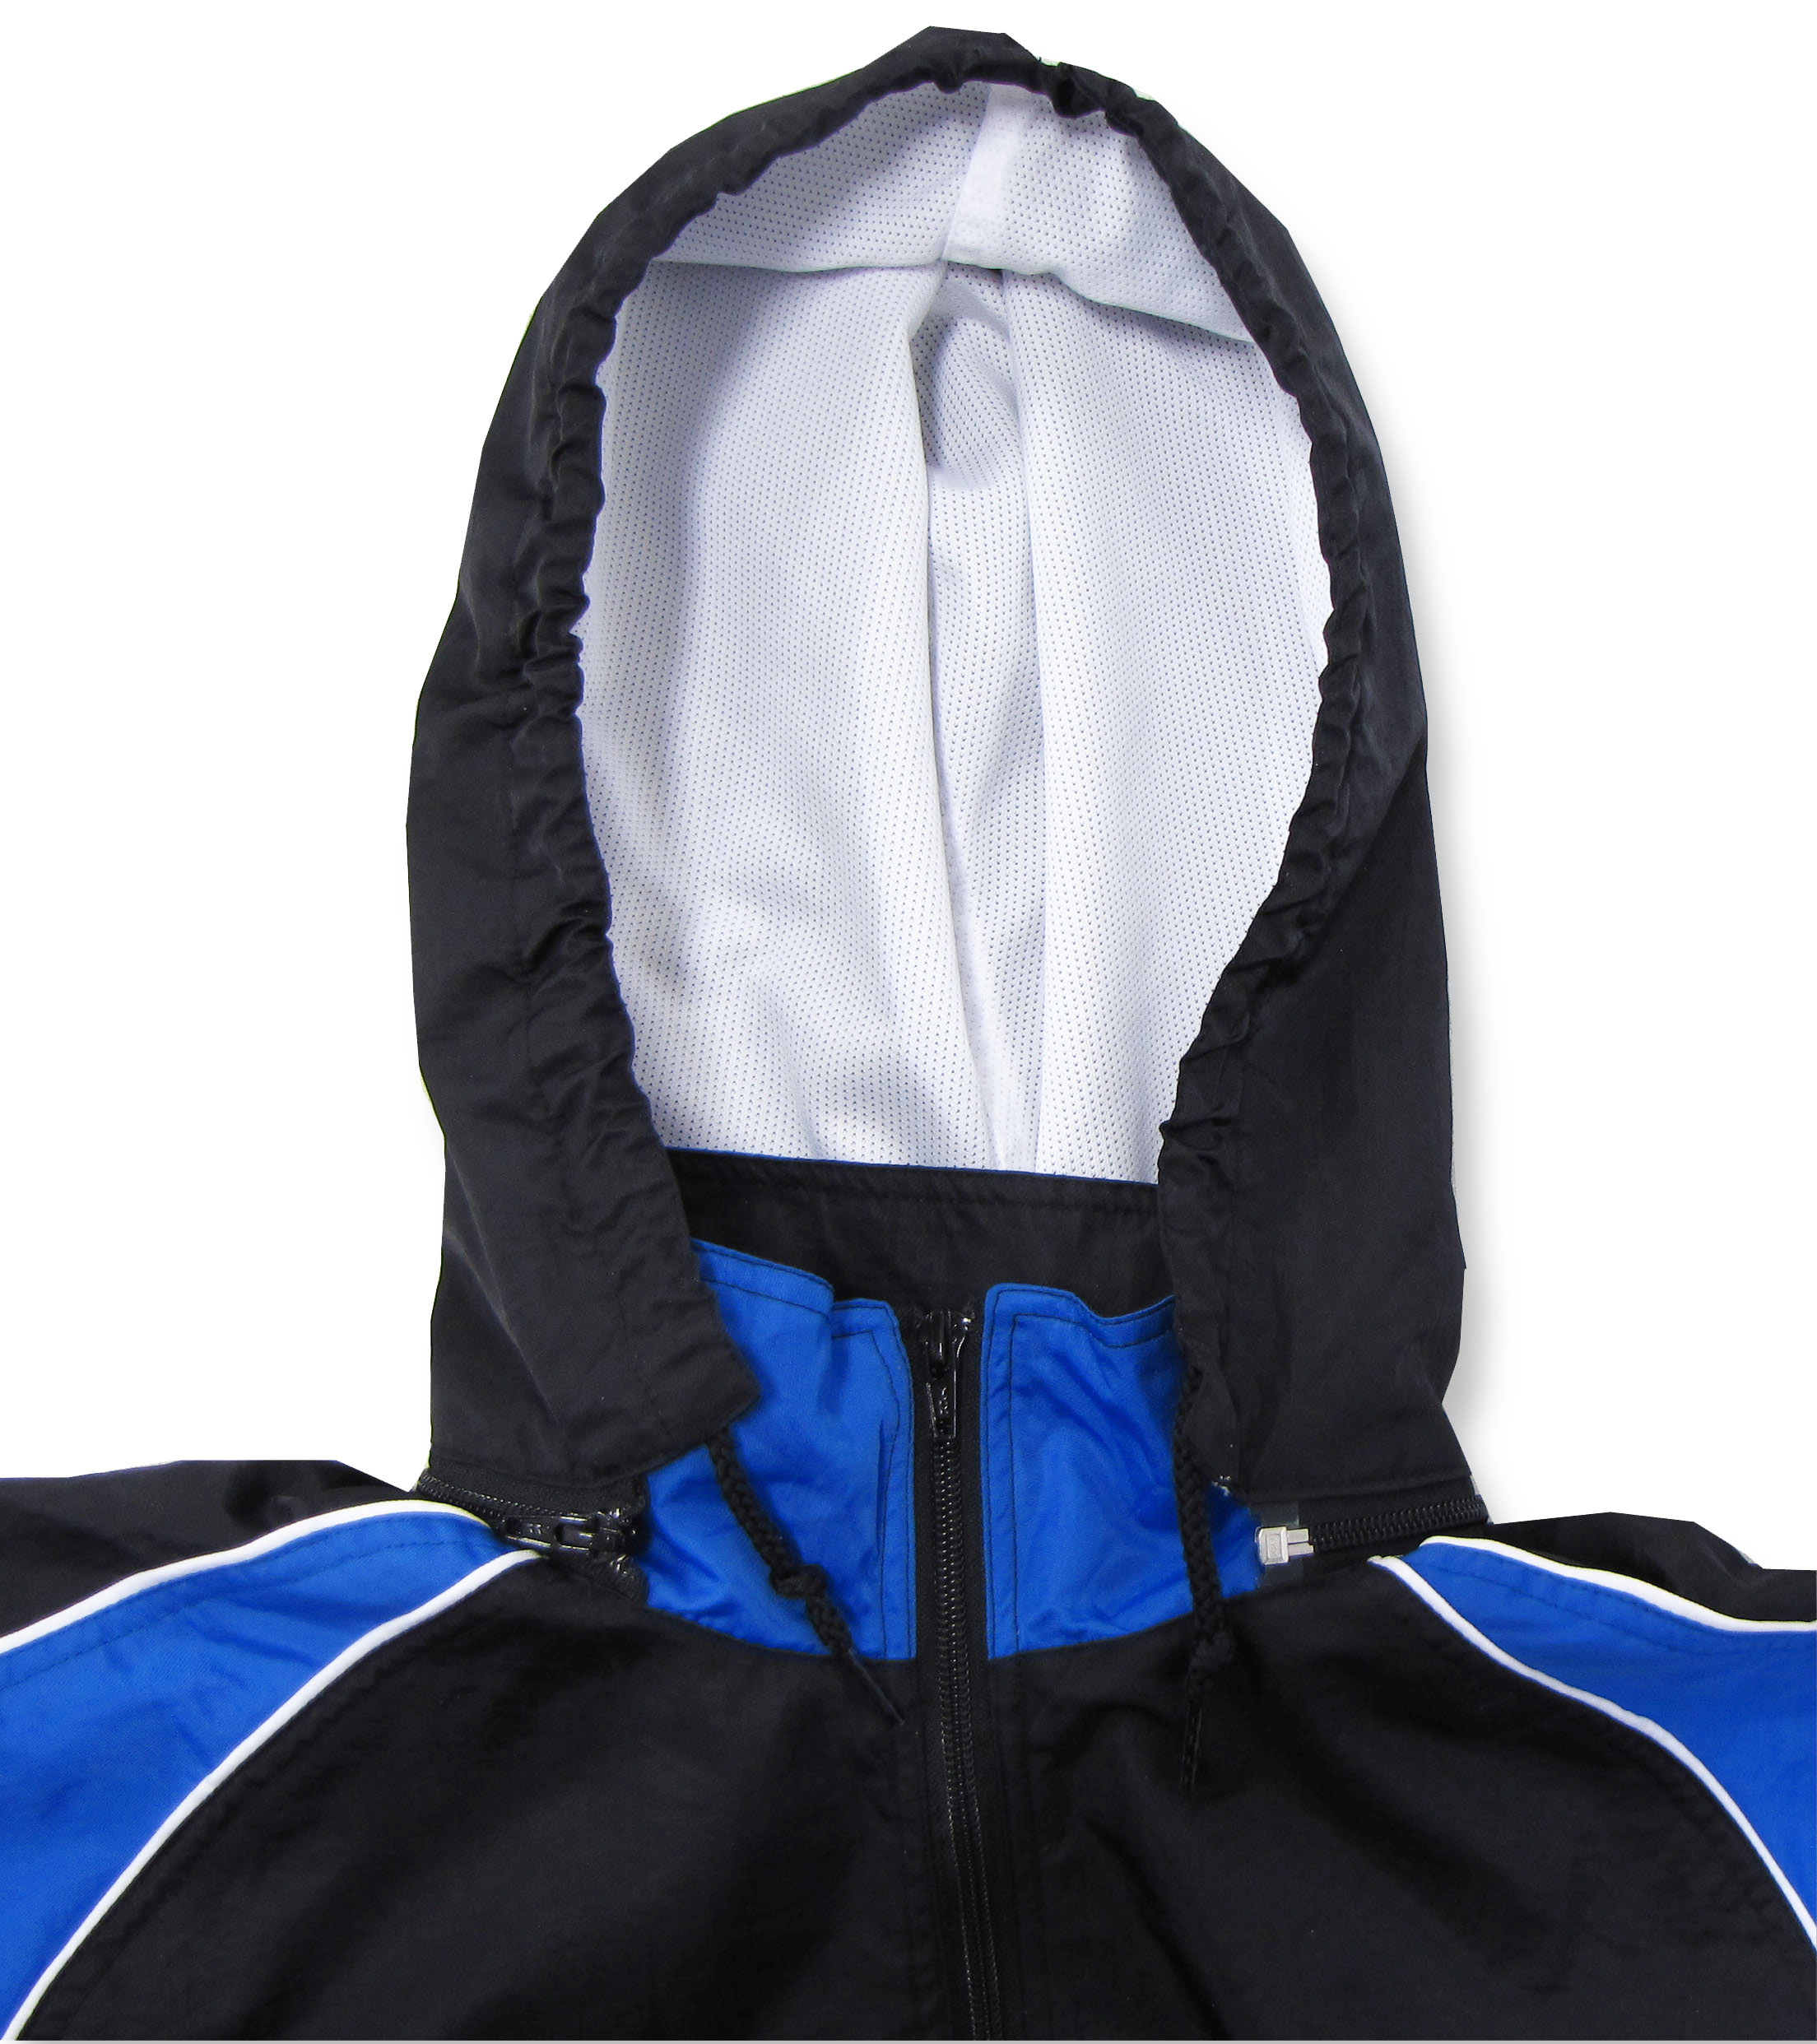 Viper jacket detachable hood by Code Four Athletics